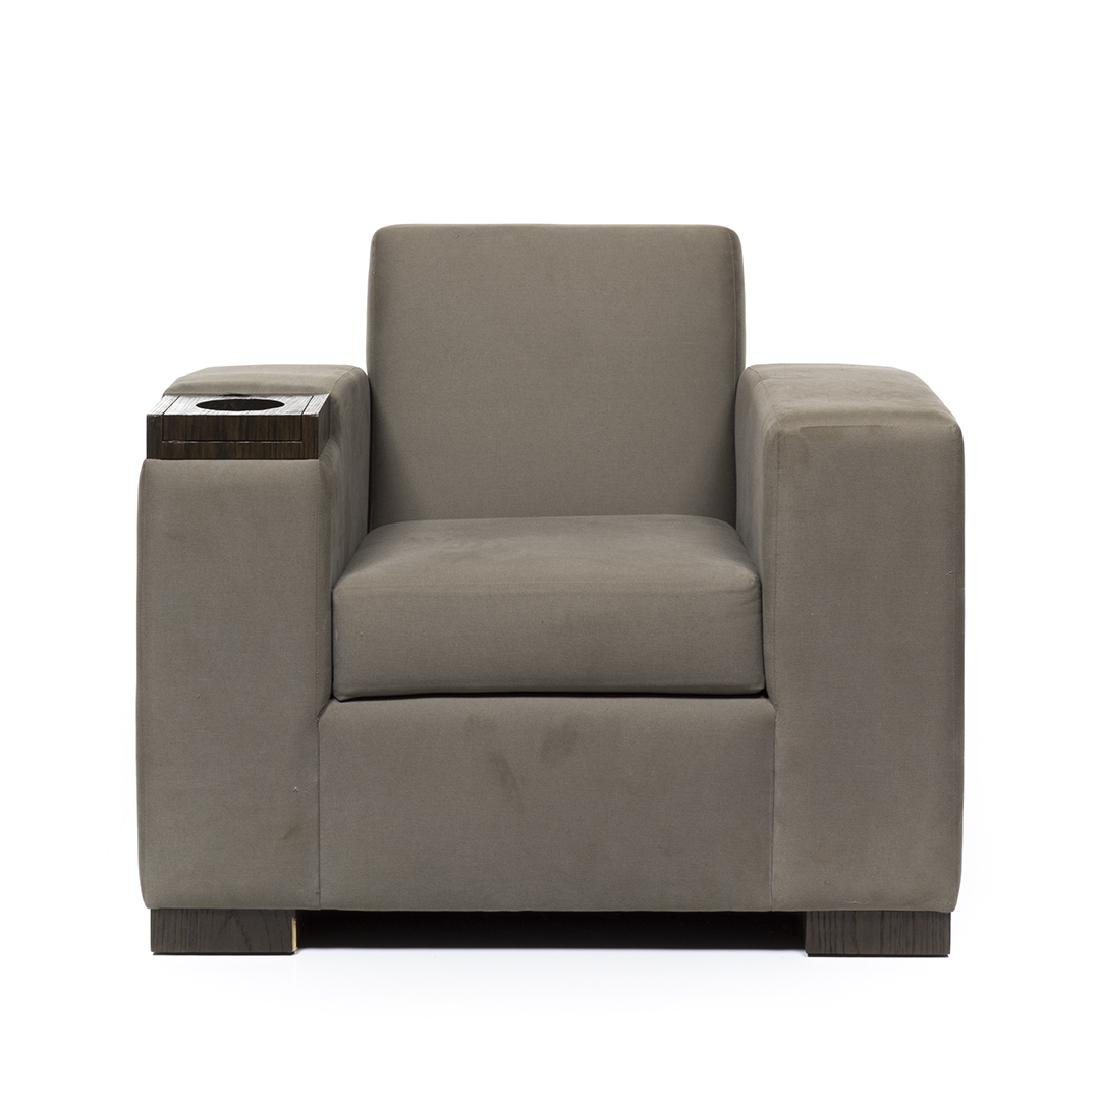 Blackman Cruz Screening Room Lounge Chair